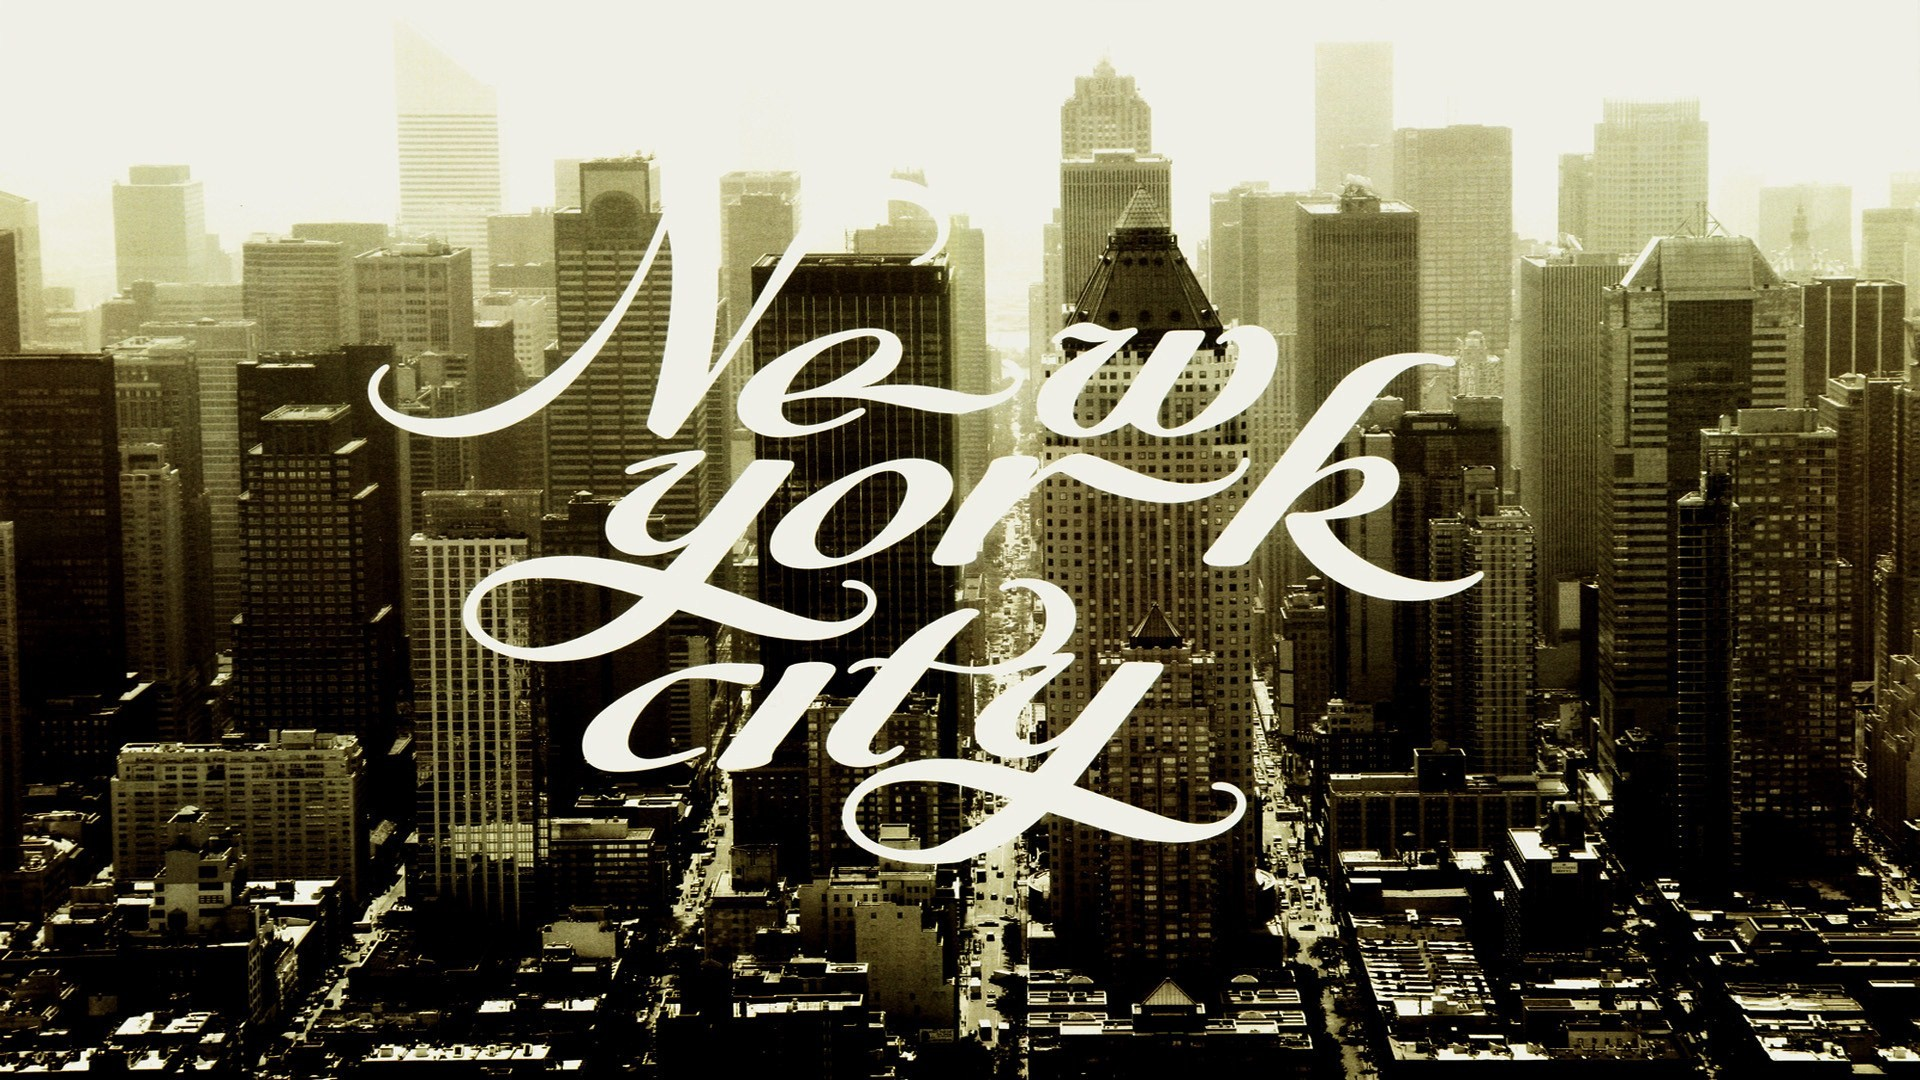 cityscapes, retro, new york city, towns - free wallpaper